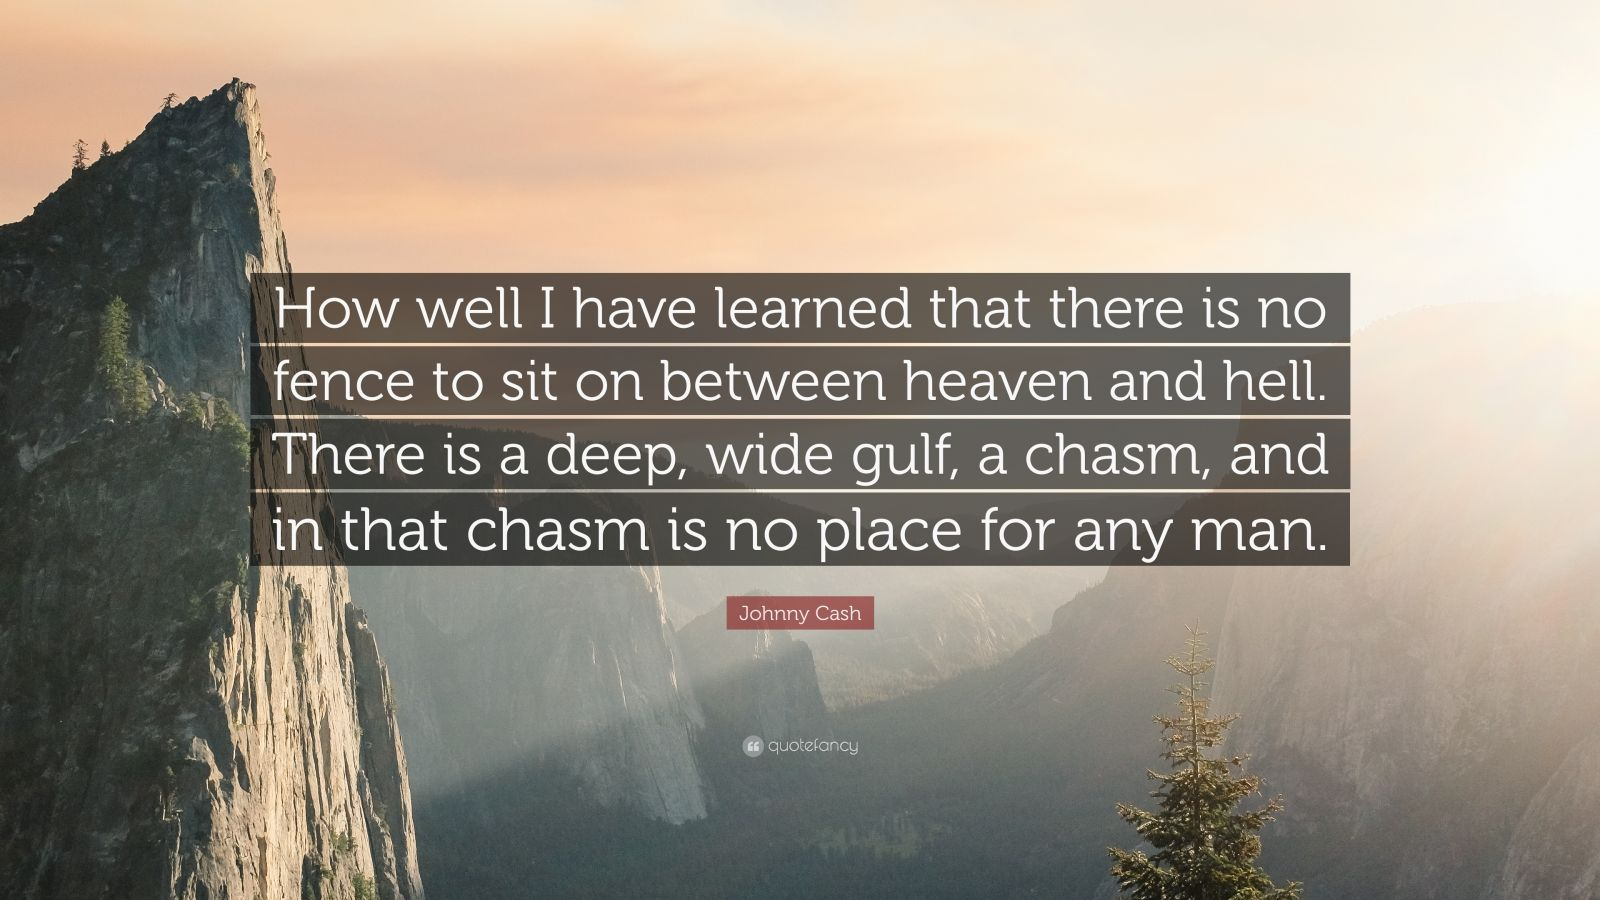 """Johnny Cash Quote: """"How well I have learned that there is no fence to sit on between heaven and hell. There is a deep, wide gulf, a chasm, and in that chasm is no place for any man."""""""